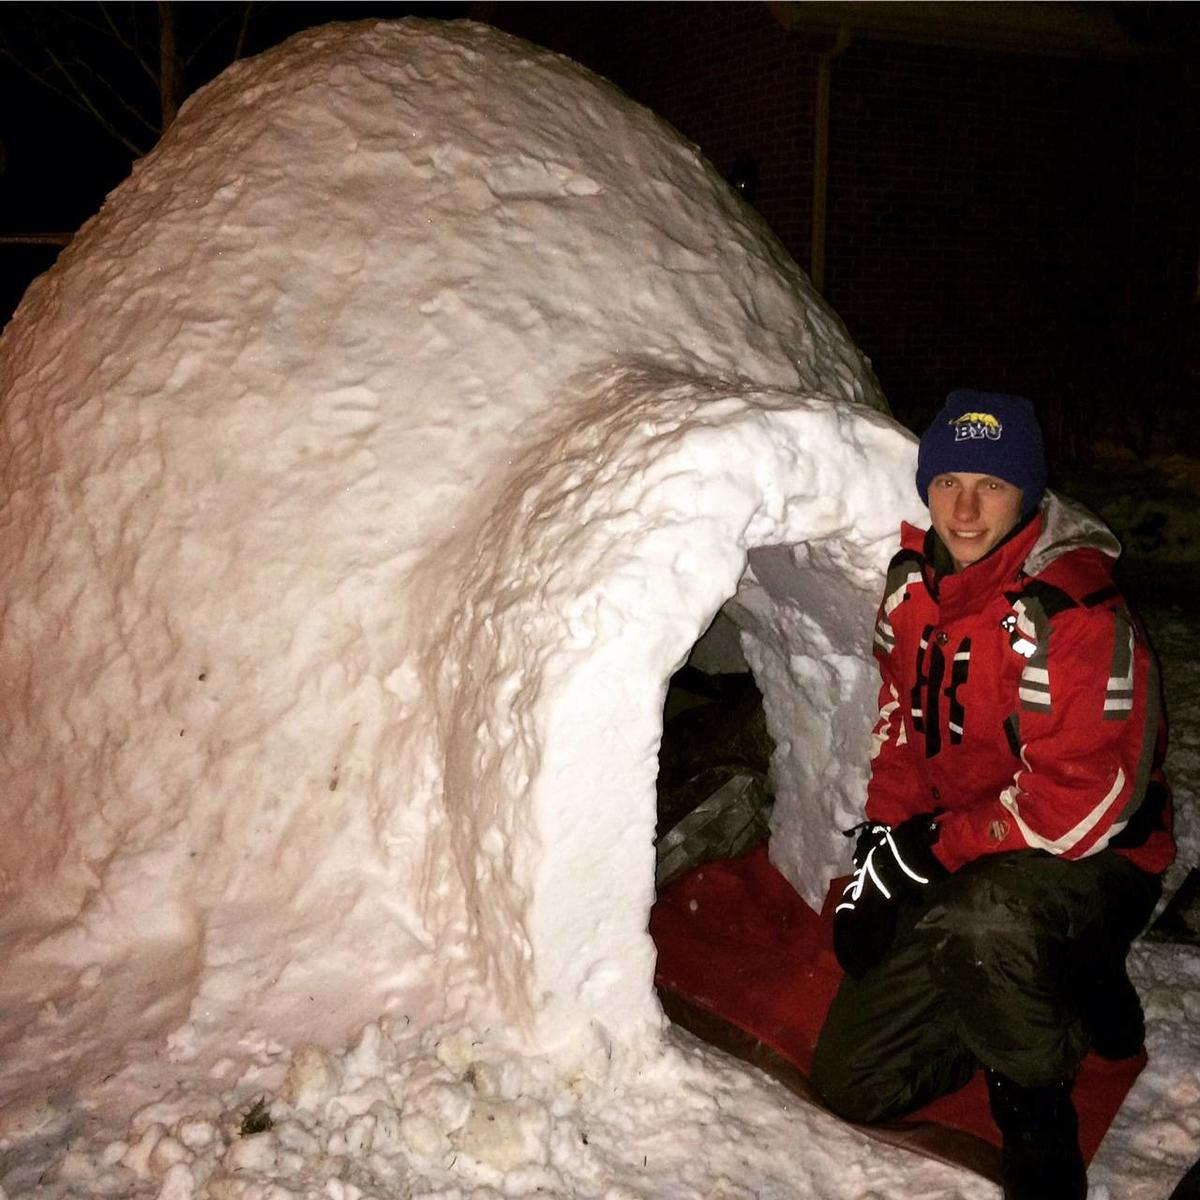 Springville siblings make building igloos a tradition